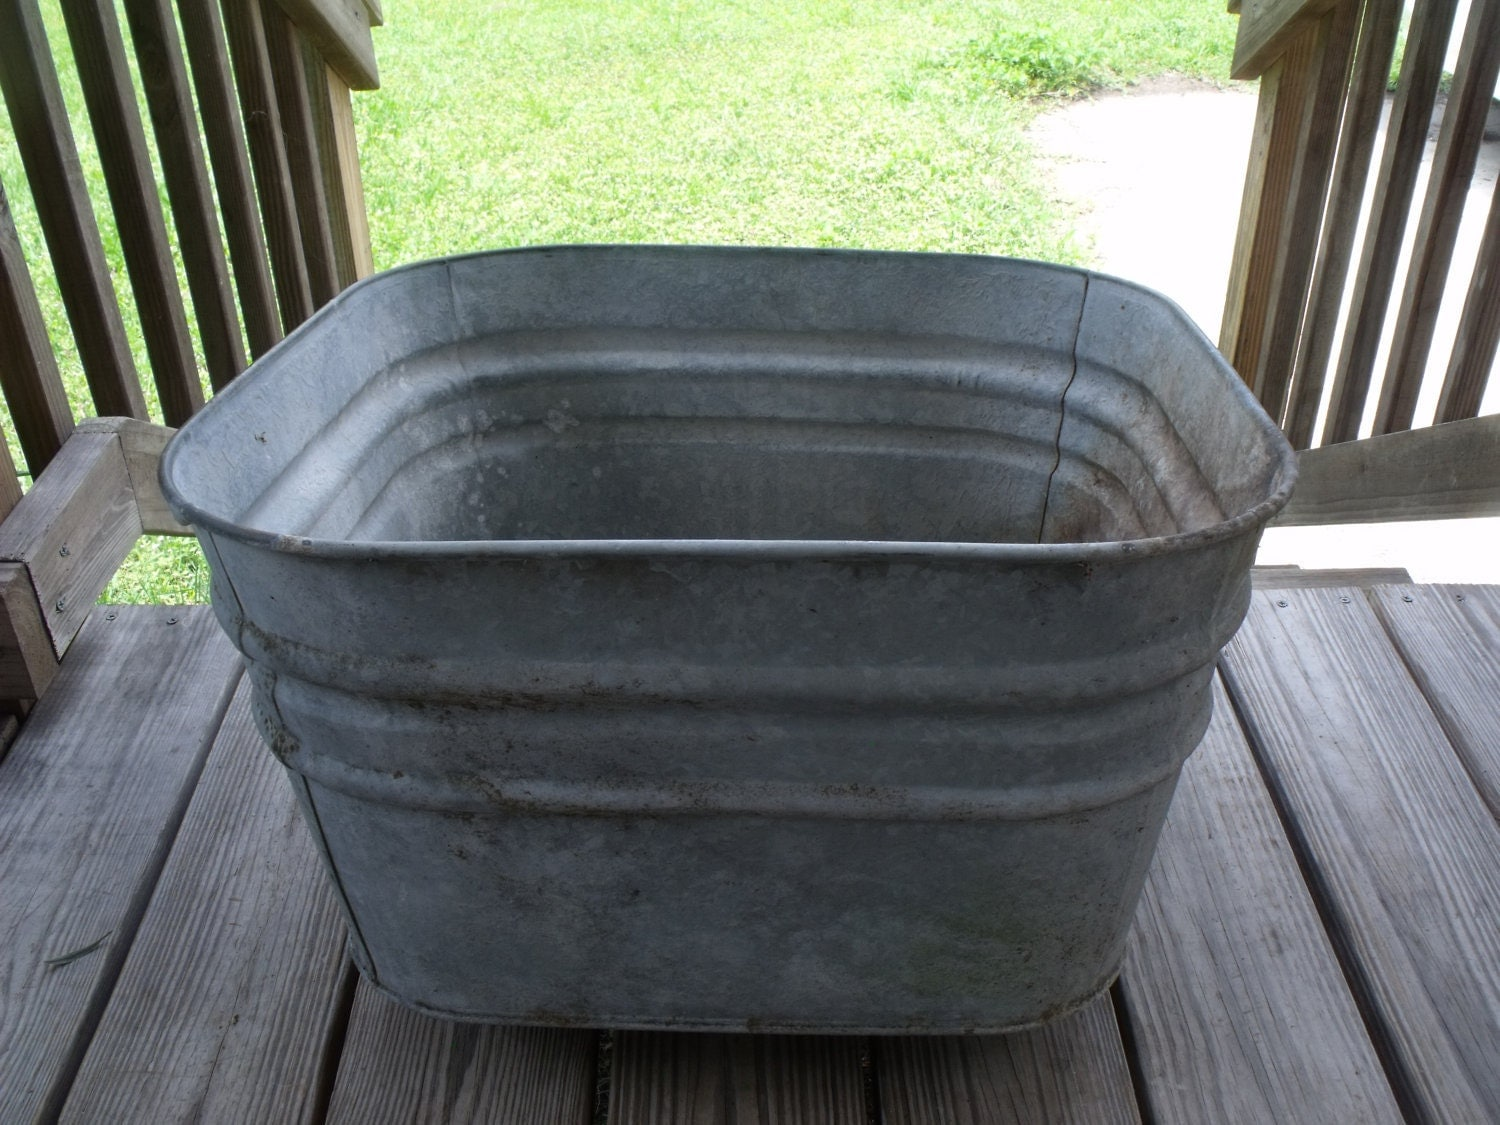 Kitchen Sink Wash Tub : Vintage Galvanized Steel RUB A DUB Tub Wash Basin Sink